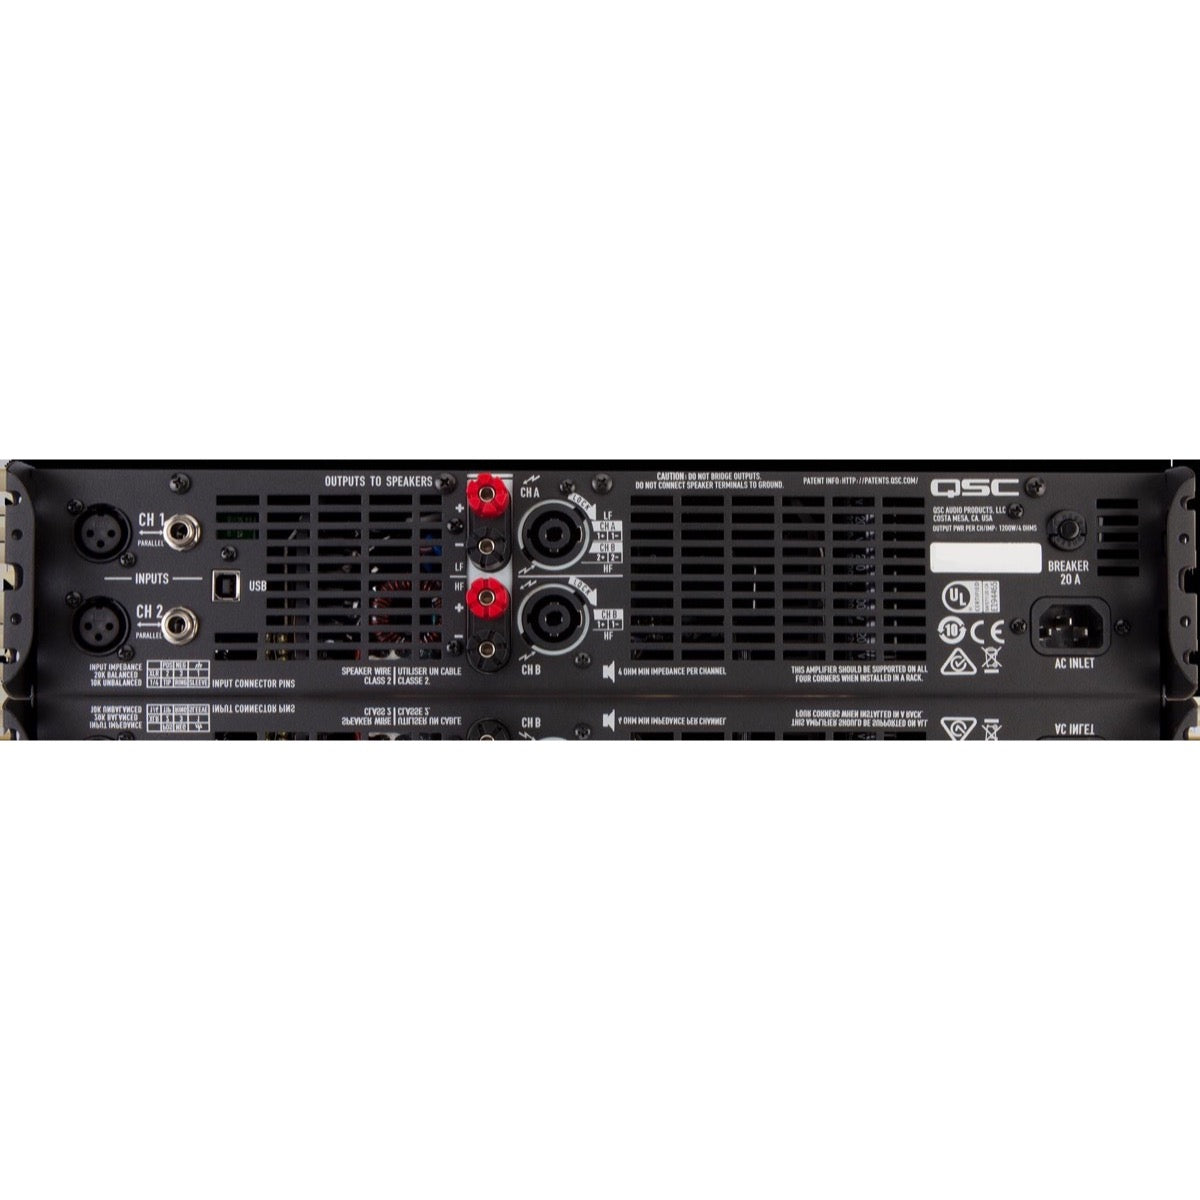 QSC GXD 8 Class D Power Amplifier with DSP